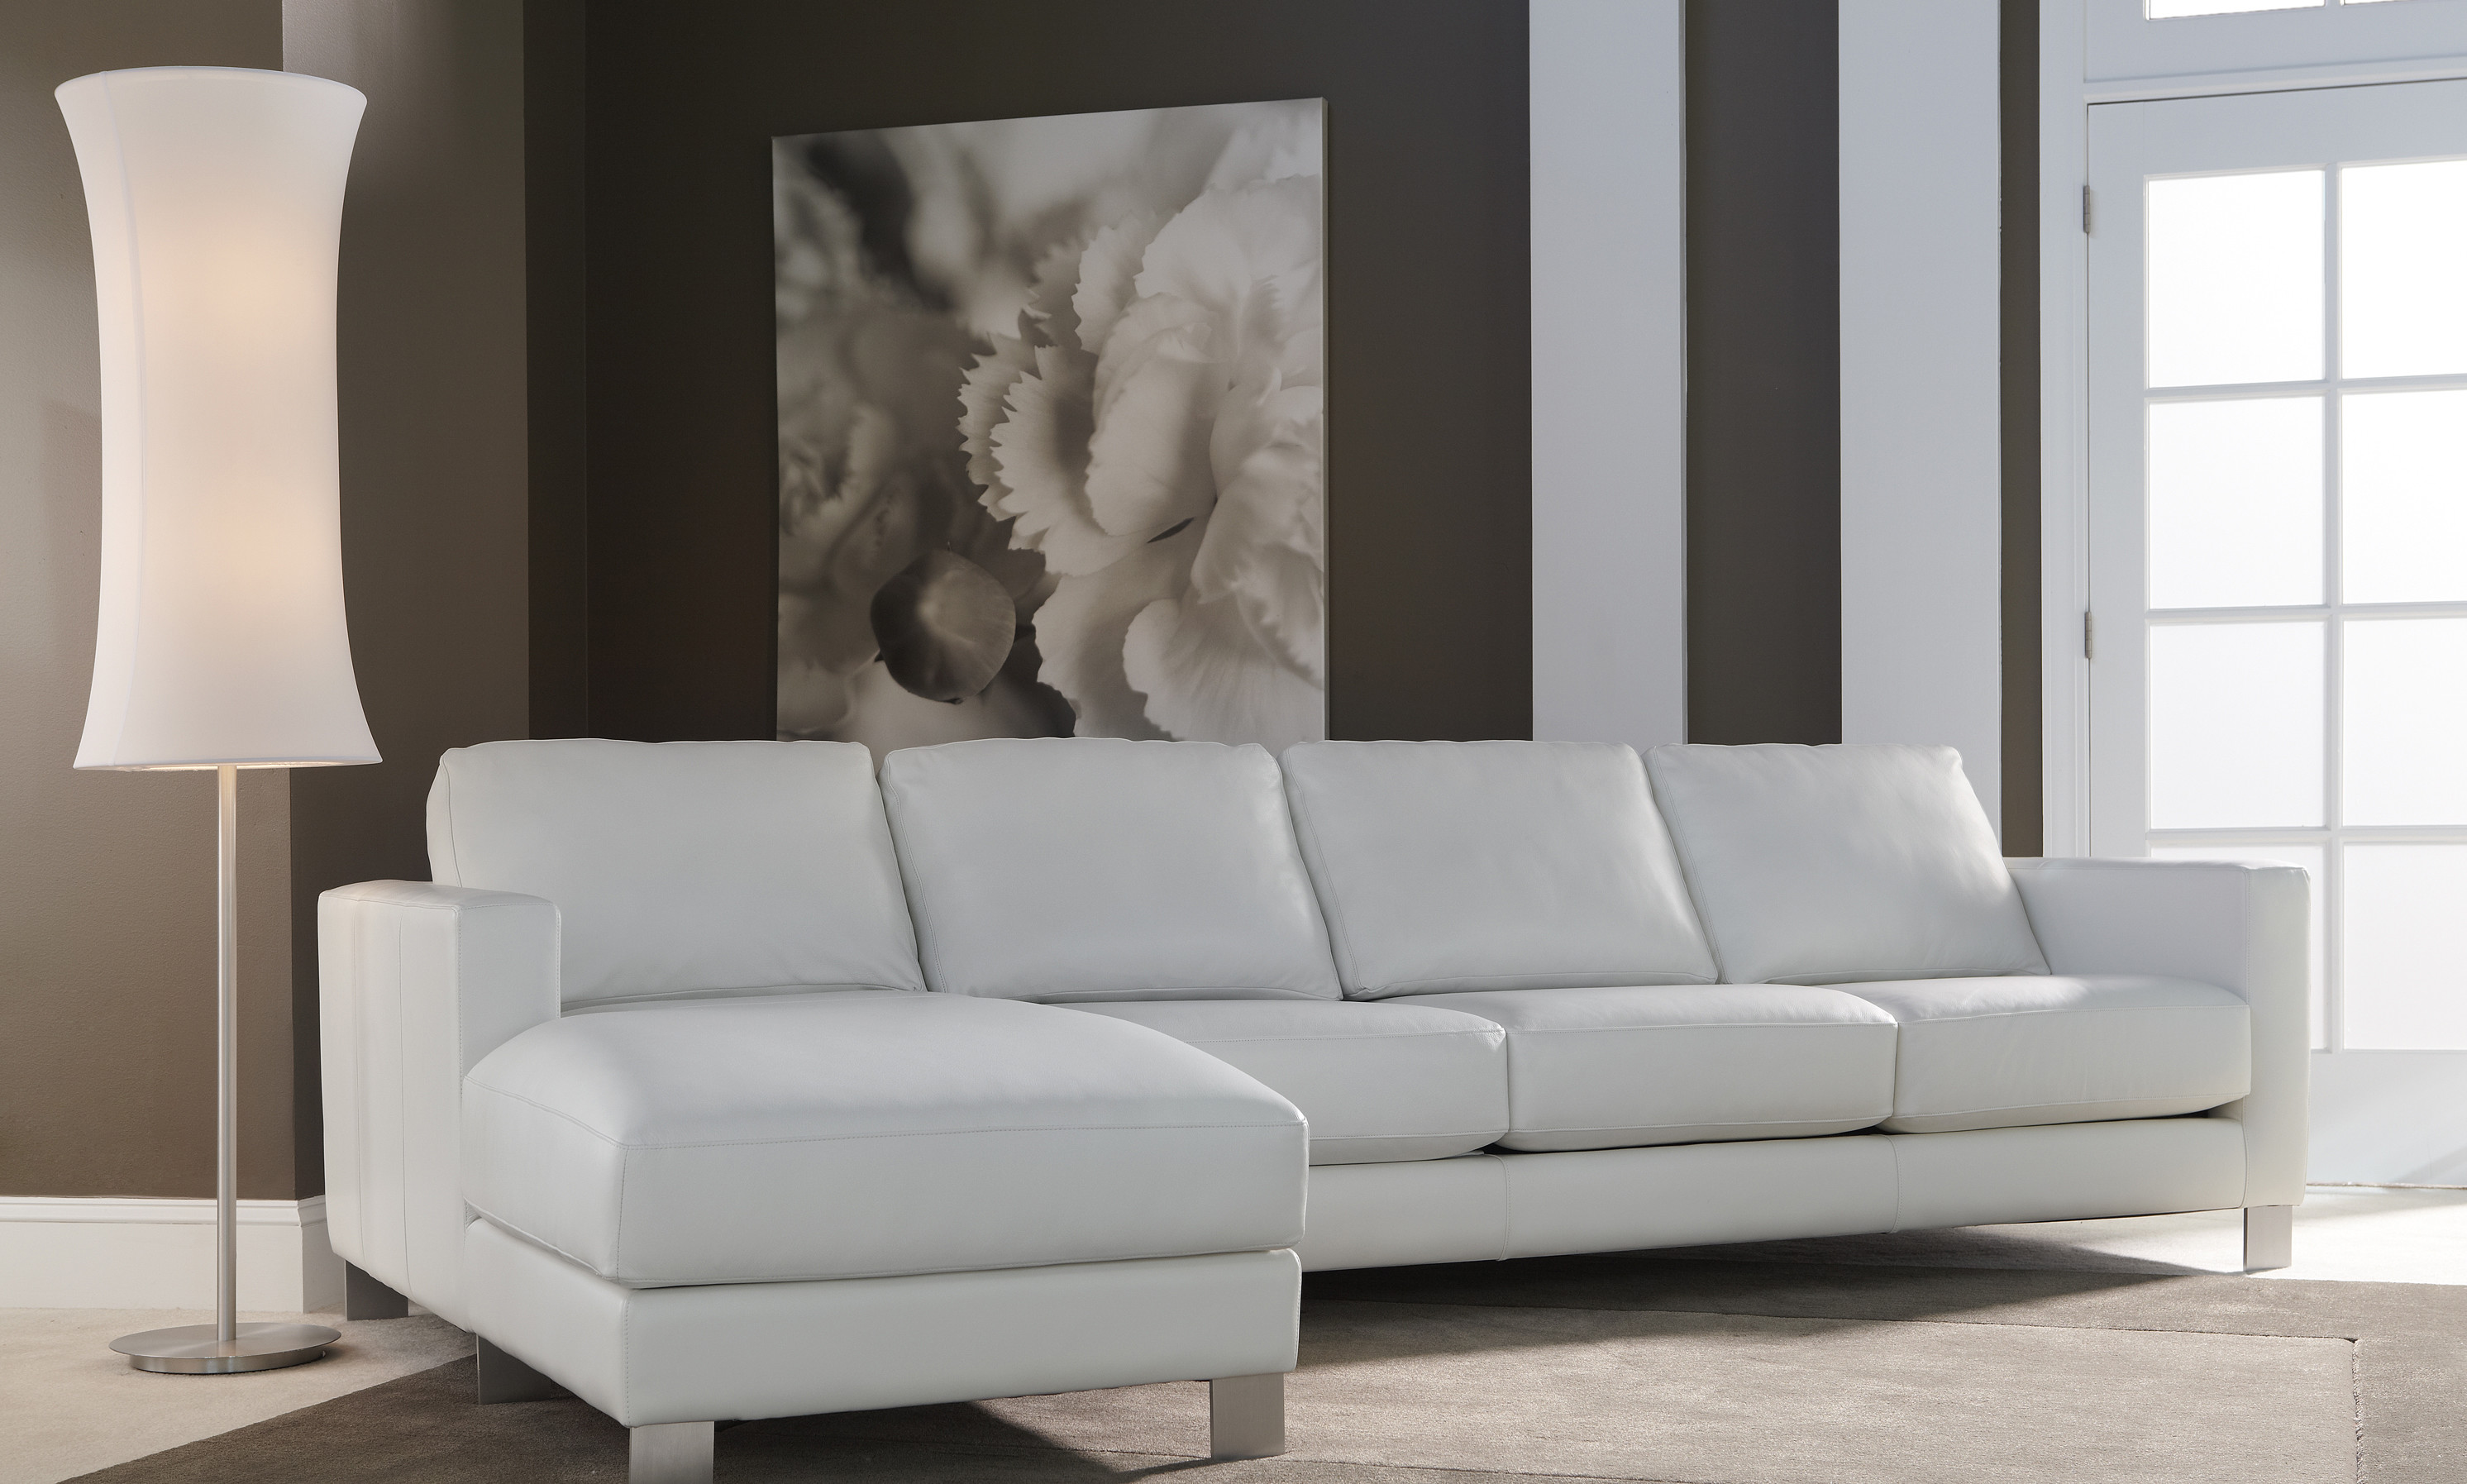 Dove grey leather sofa made by American Leather in modern living room